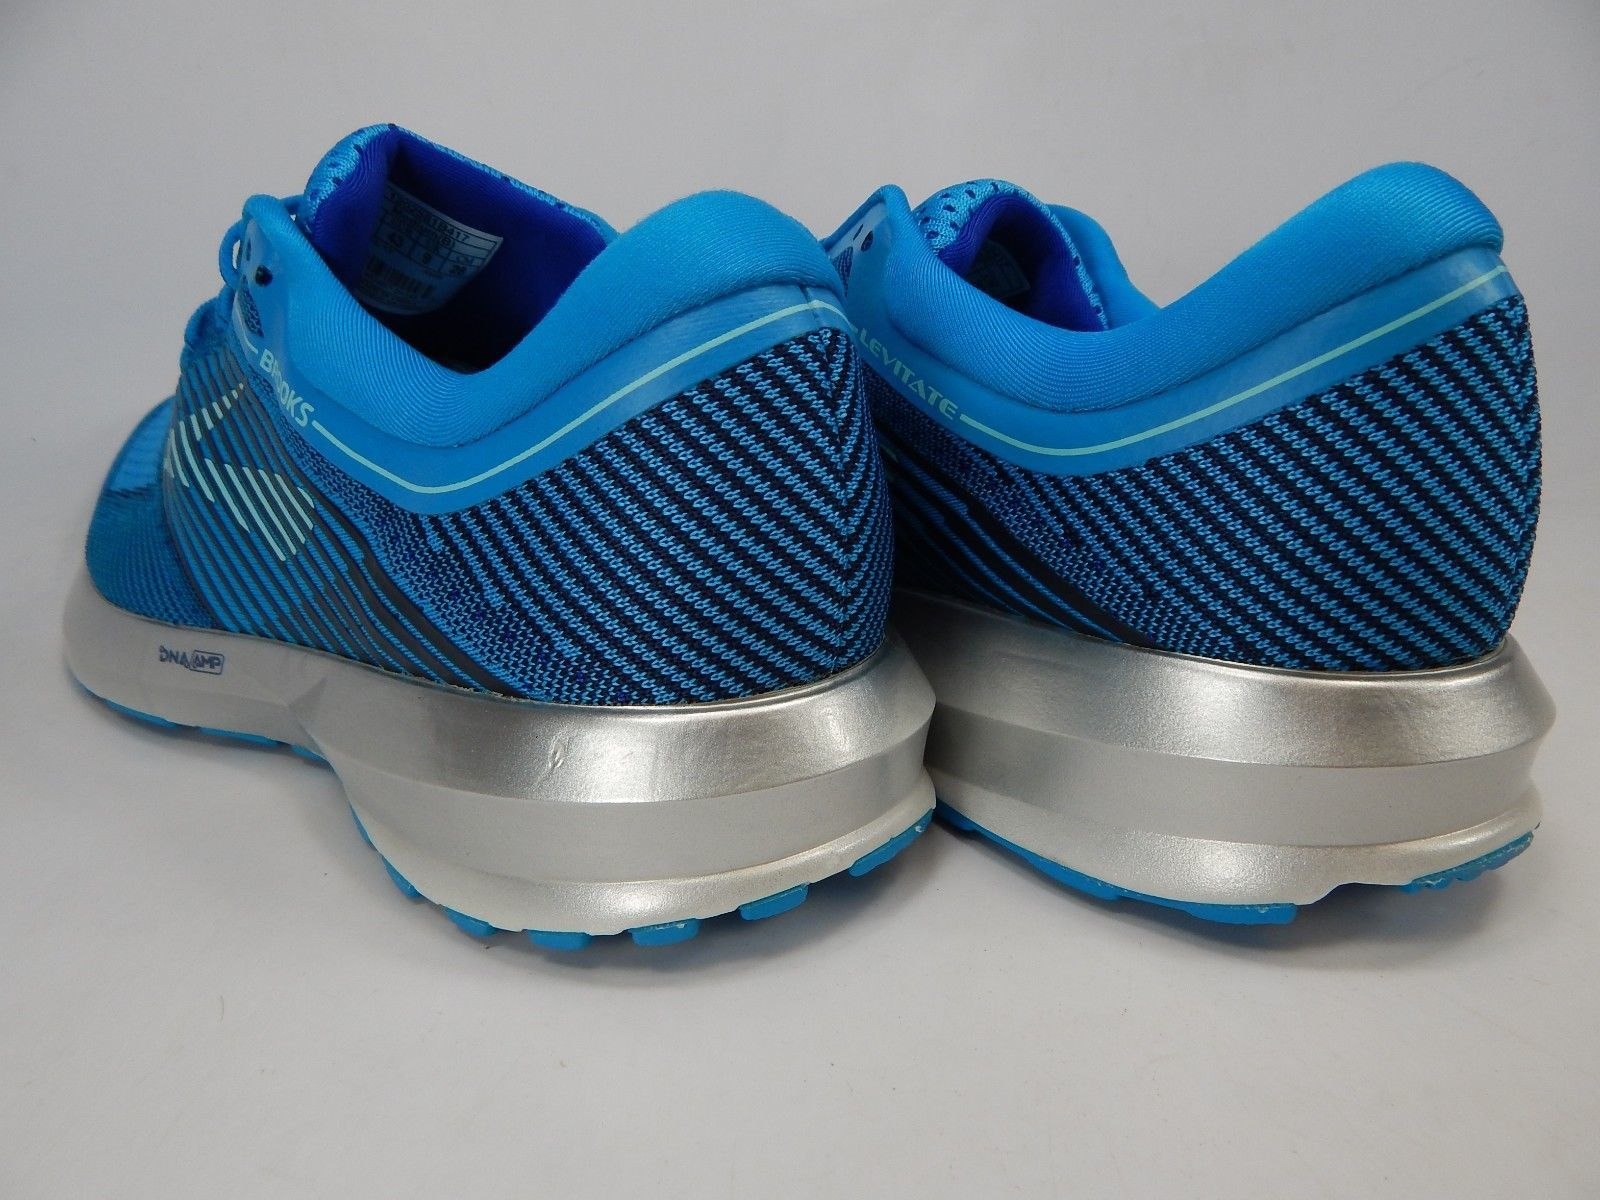 Brooks Levitate Size US 11 M (B) EU 43 Women's Running Shoes Blue 1202581B417